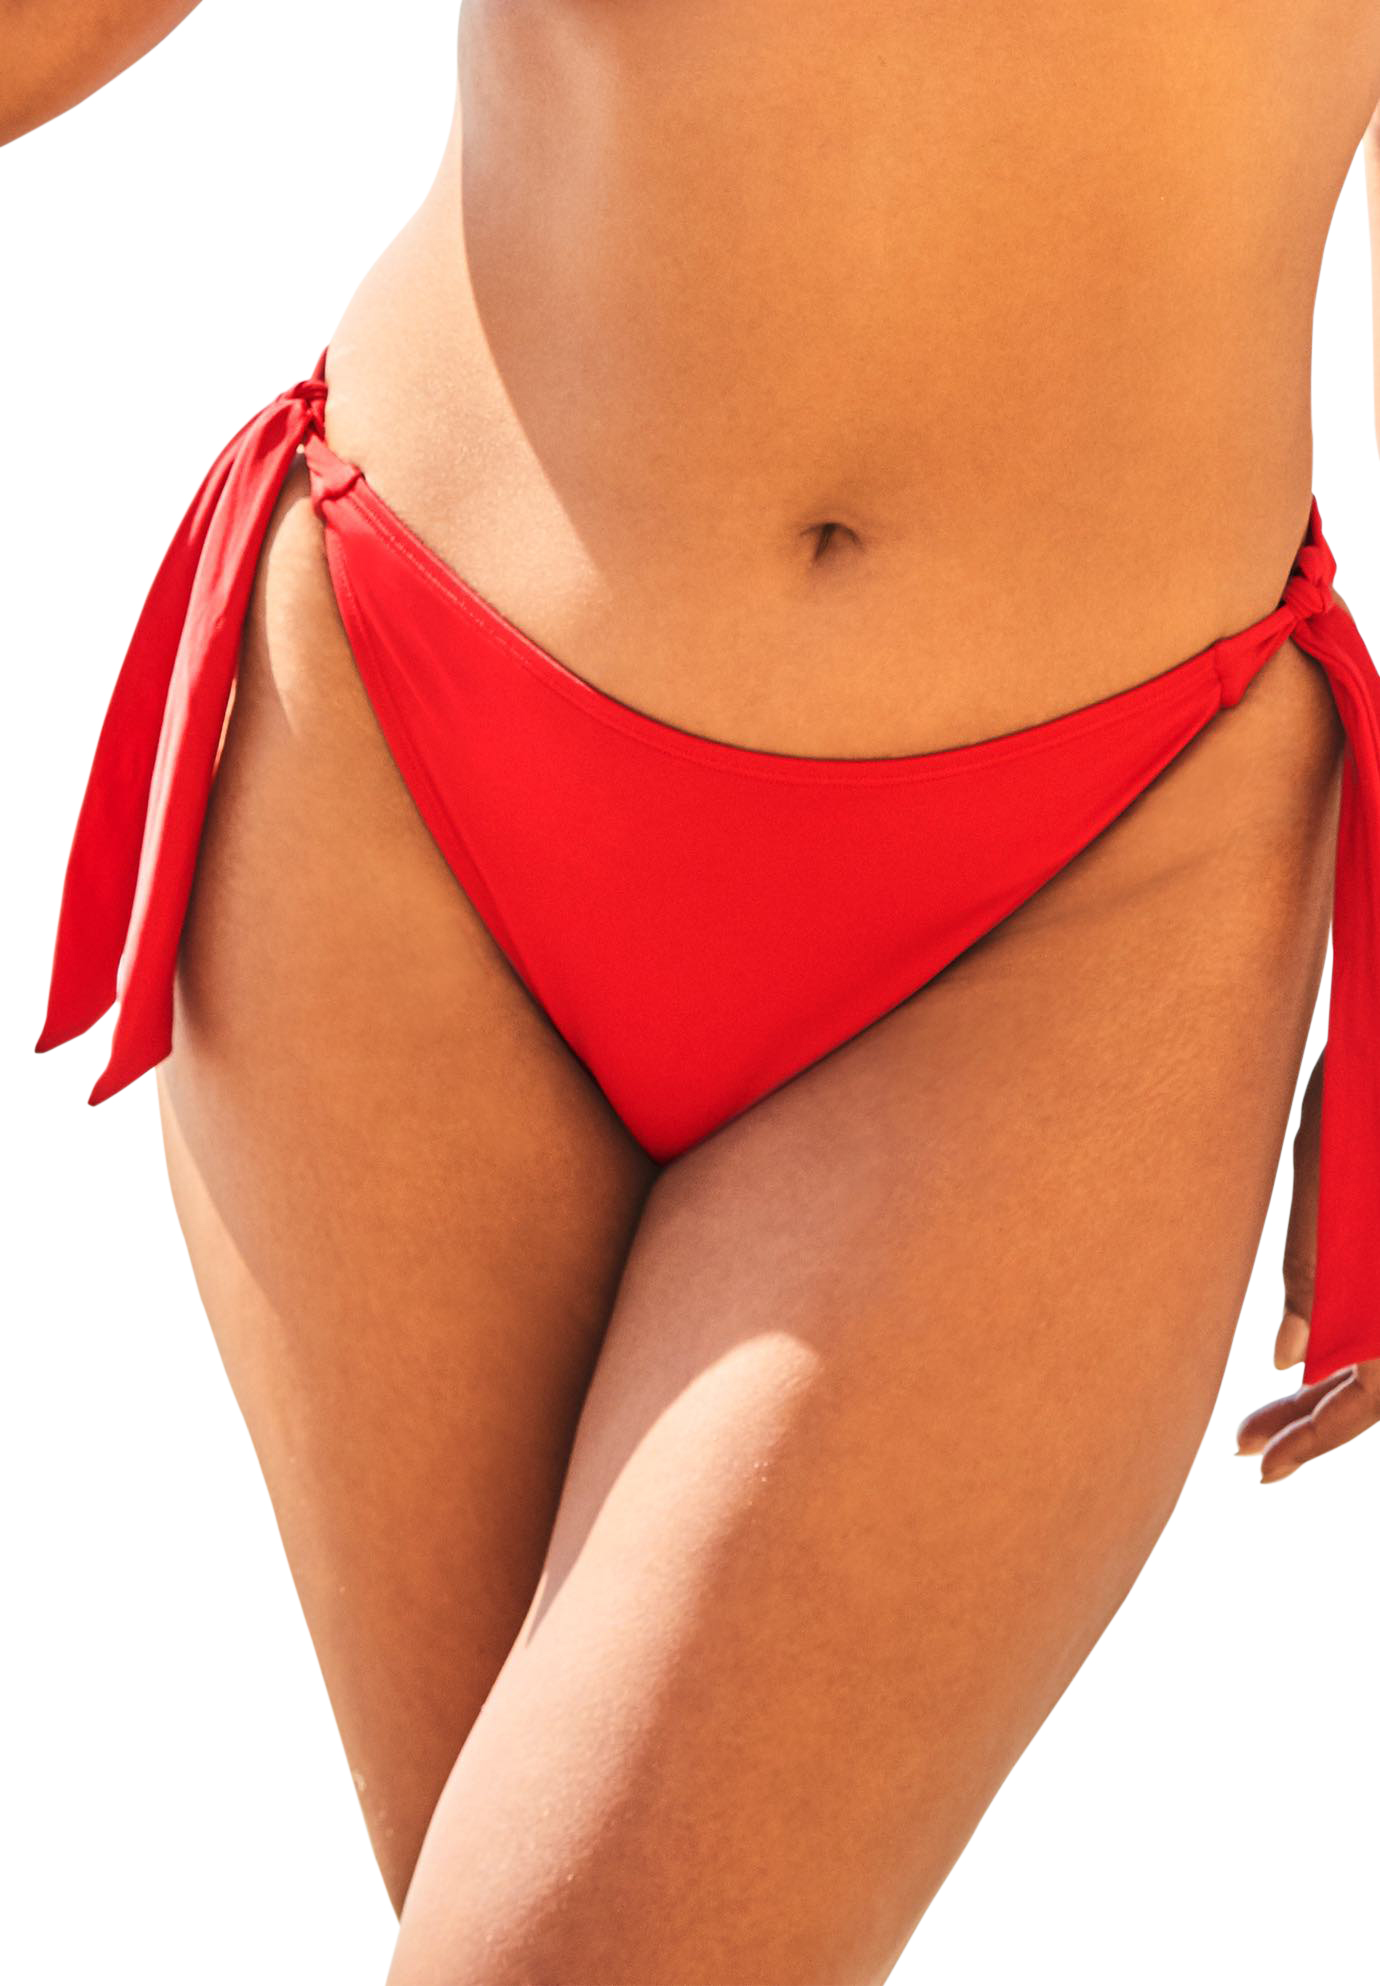 Plus Size Women's Ashley Graham Elite Bikini Bottom by Swimsuits For All in Lipstick Red